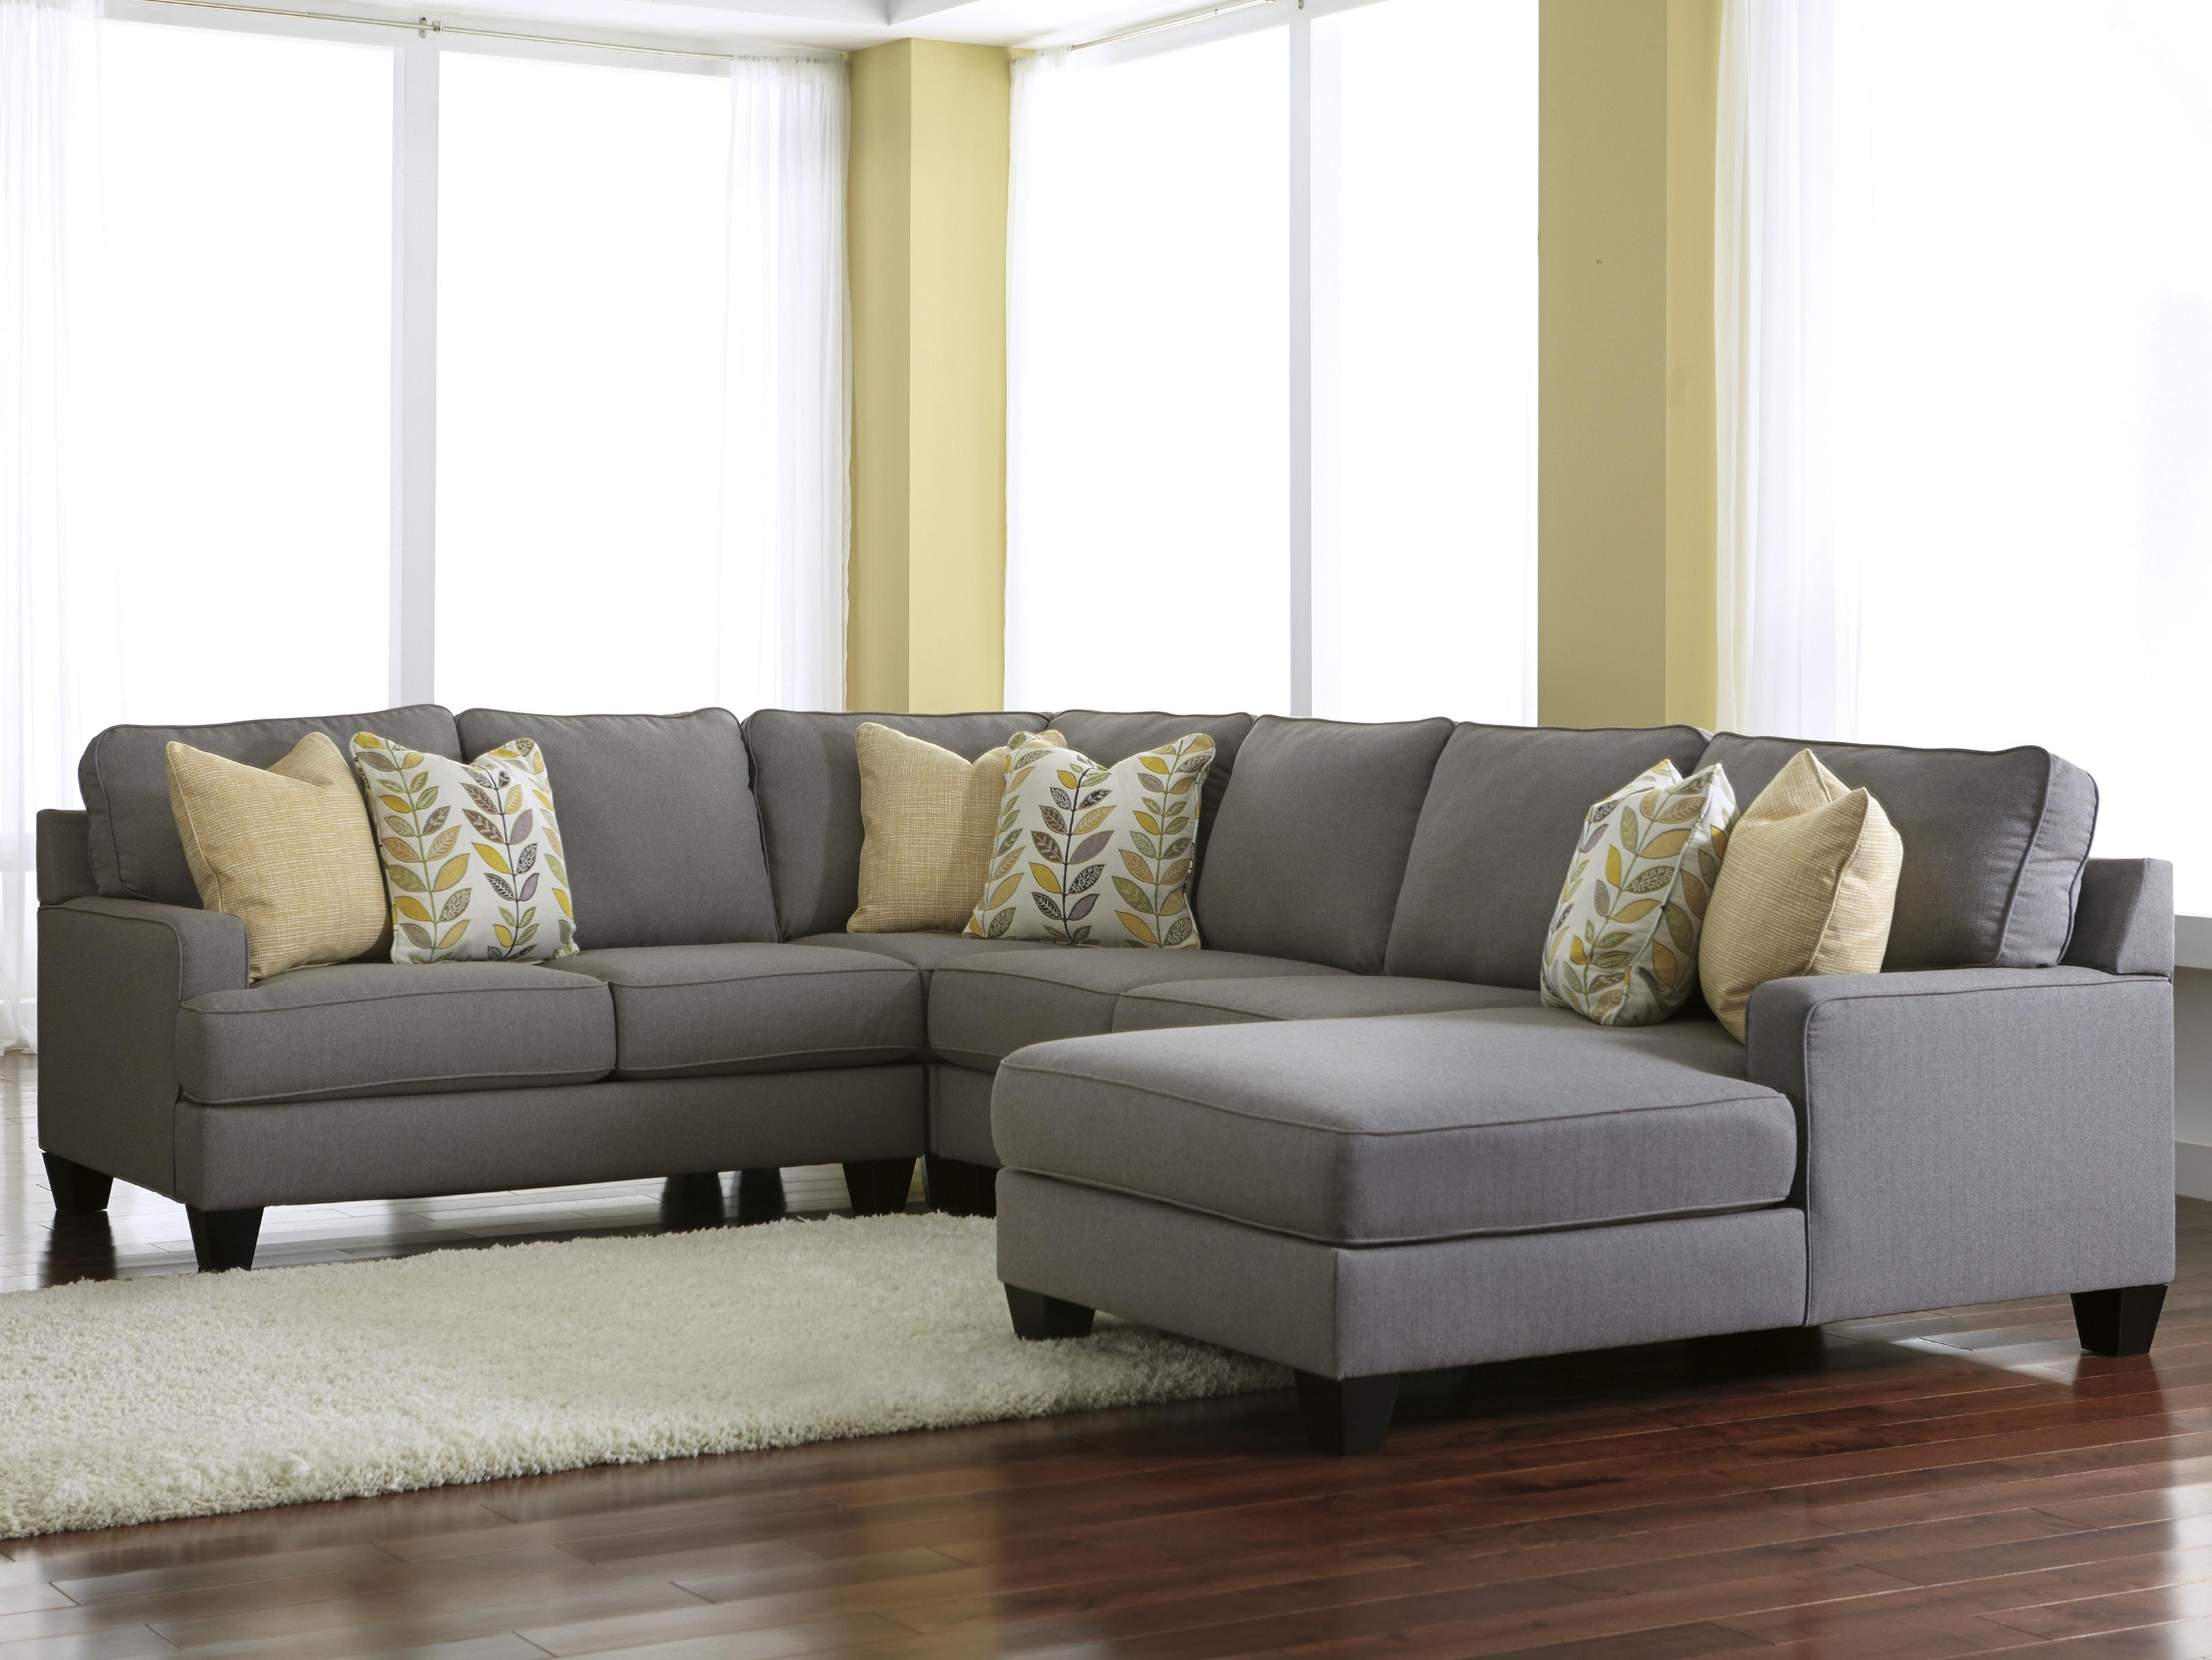 Harrisburg Pa Sectional Sofas Regarding Most Popular Modern 4 Piece Sectional Sofa With Left Chaise & Reversible Seat (View 8 of 20)